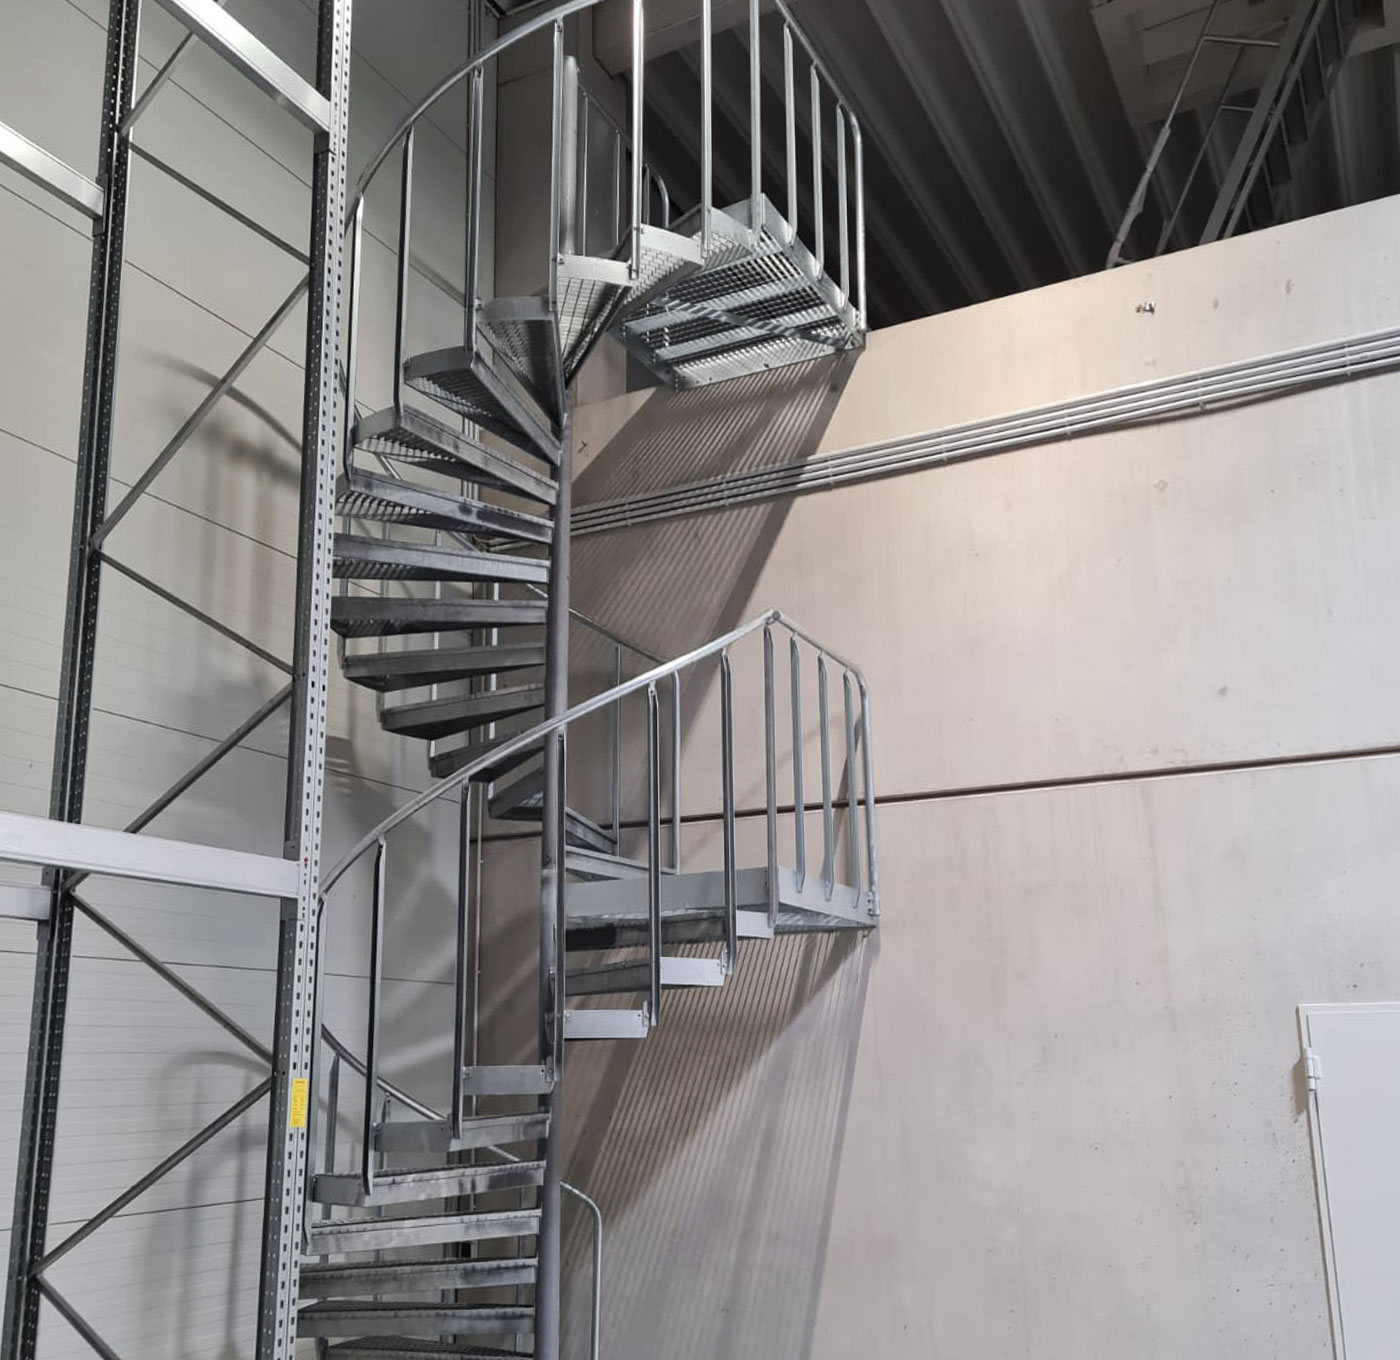 Industrial staircase with grating steps